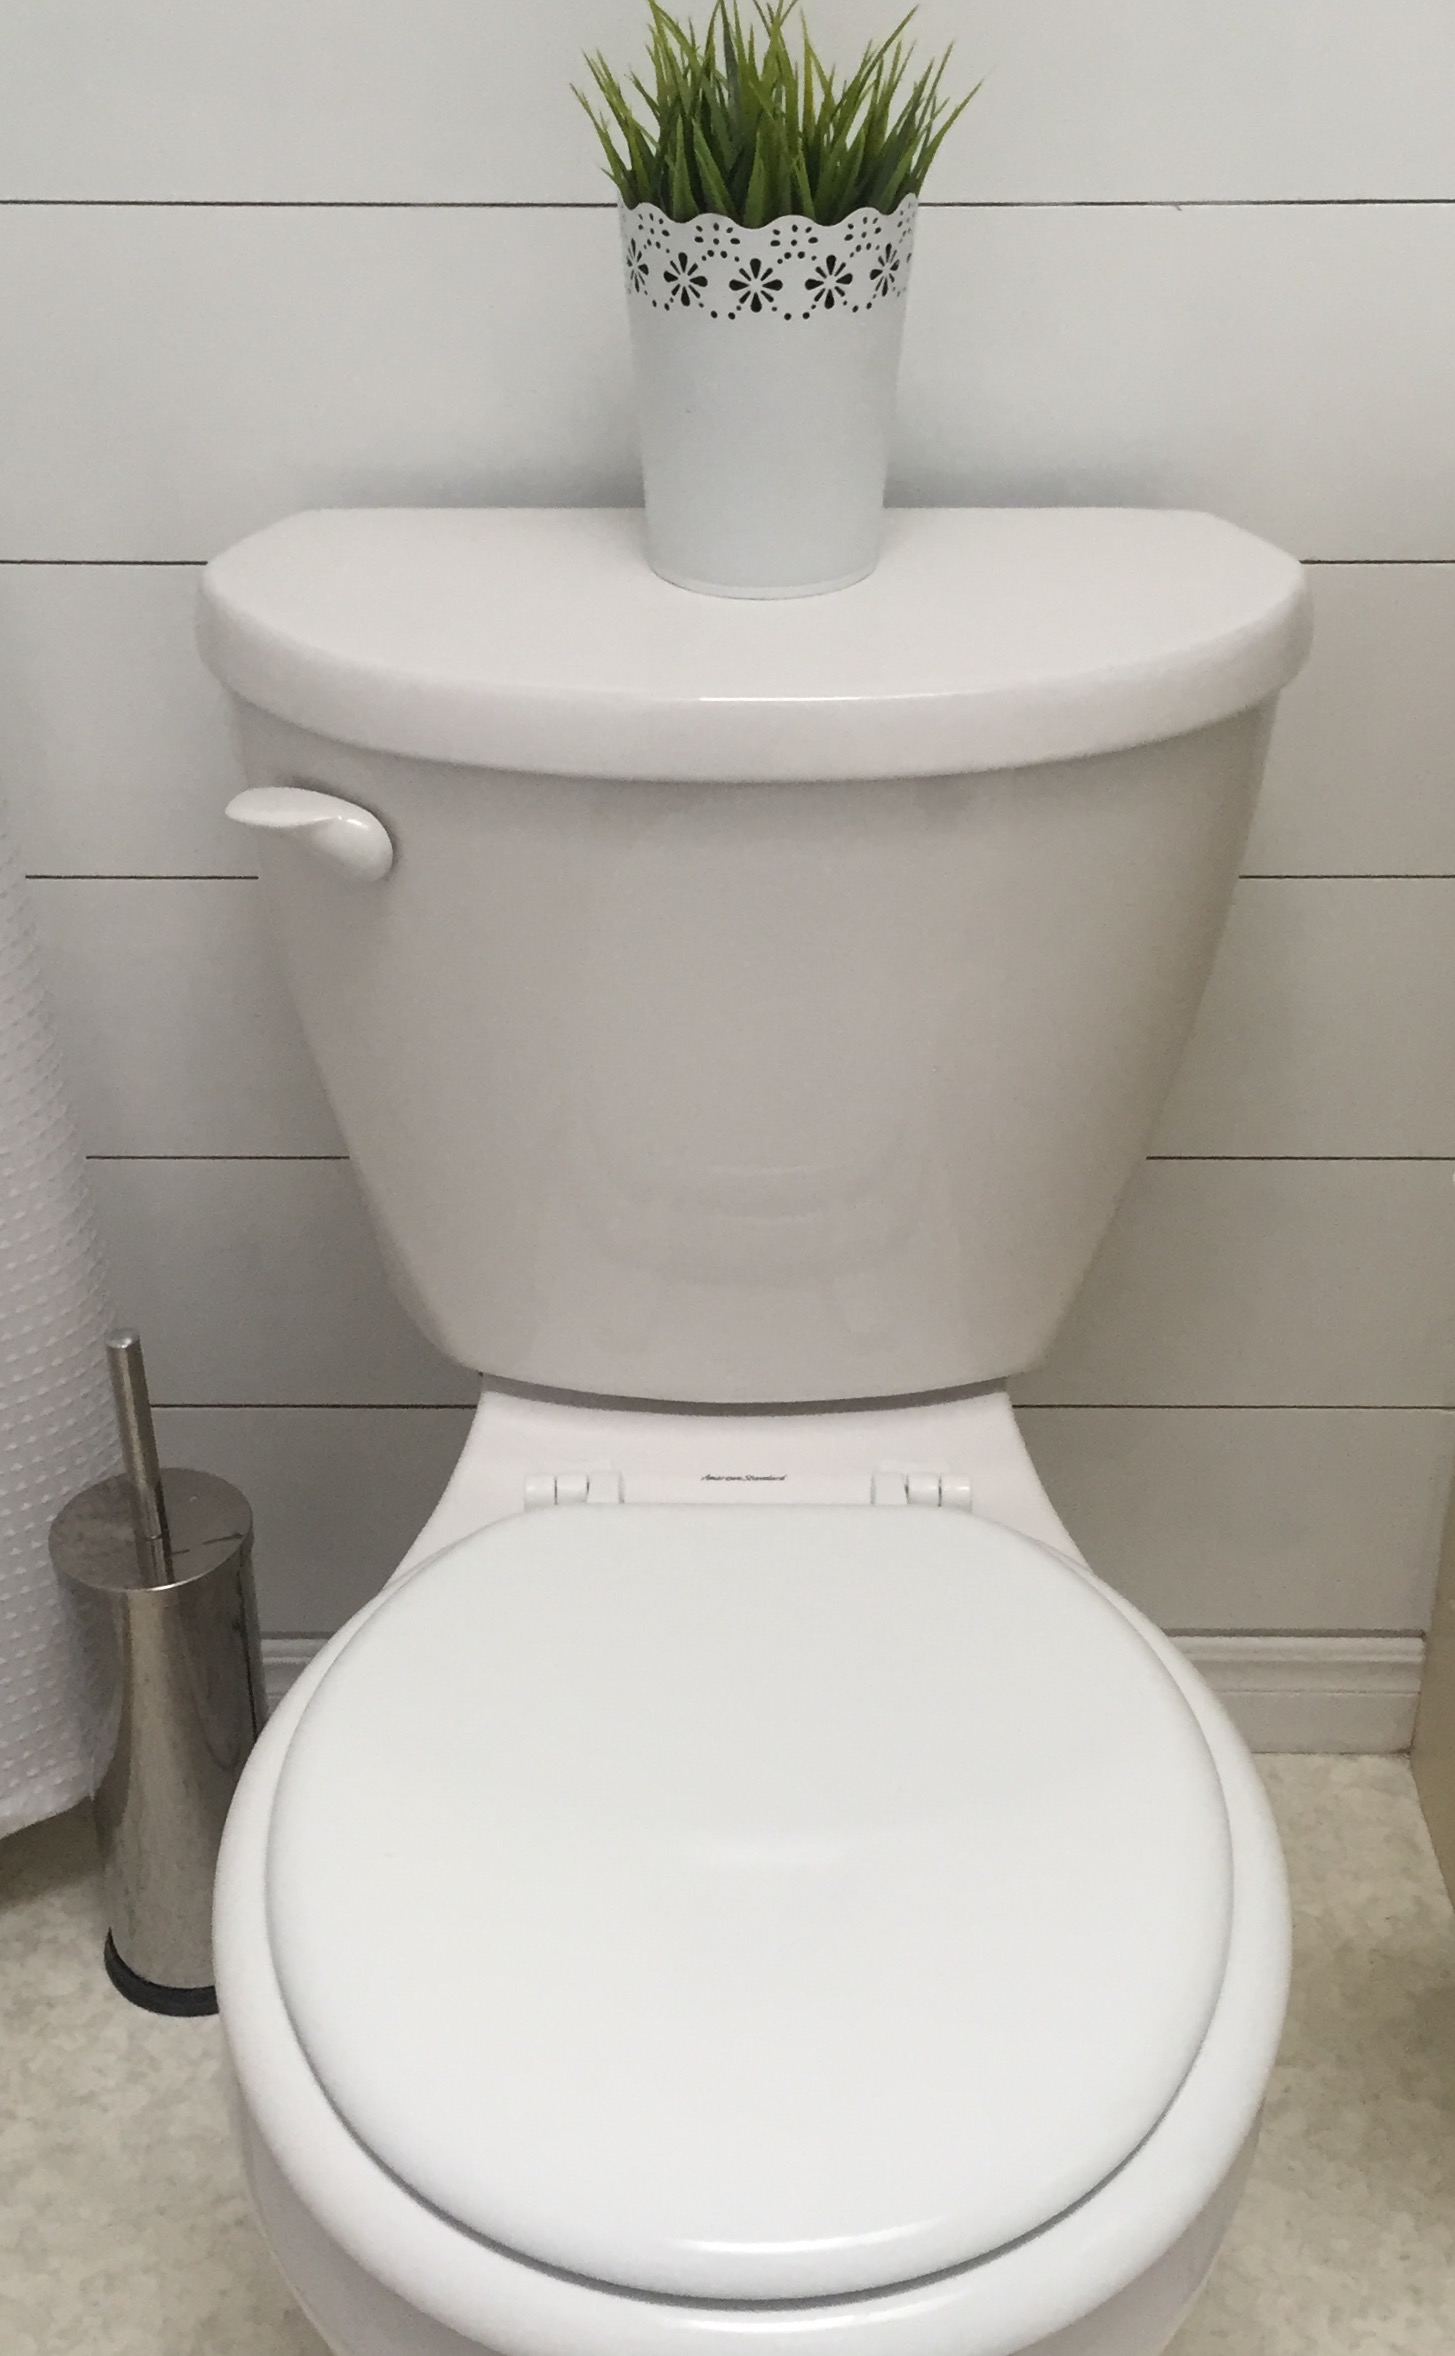 I replaced the wood toilet lid with a white one.